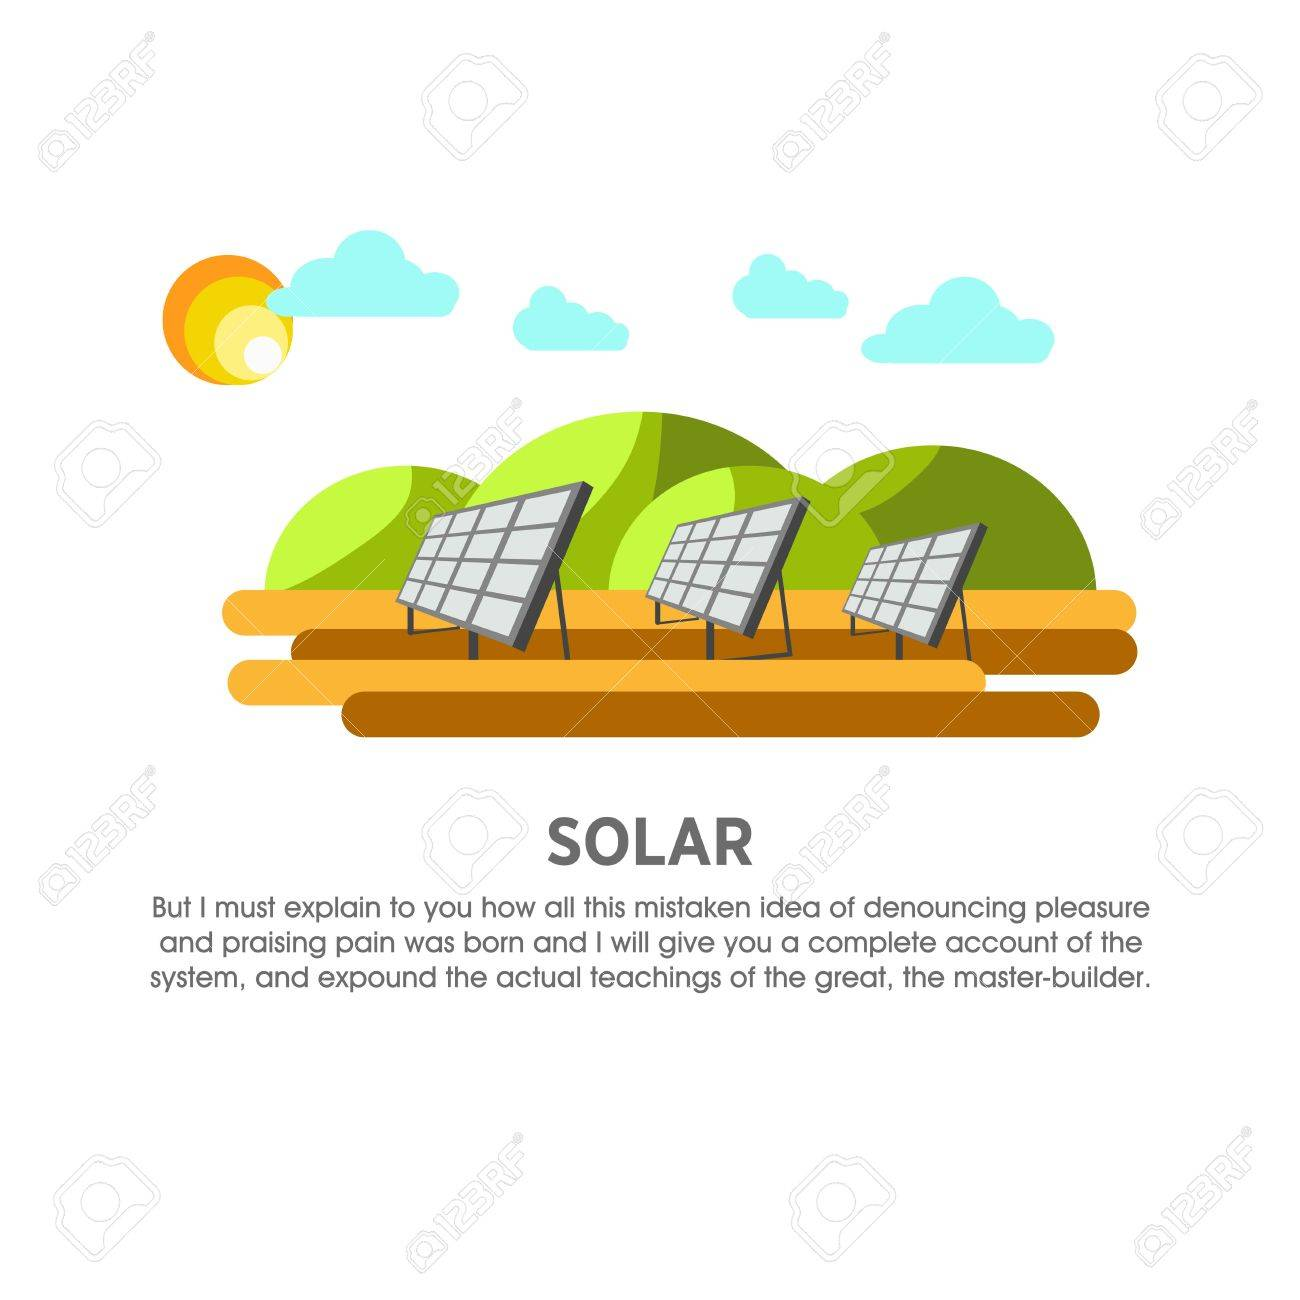 Solar Power Plant Sunlight Panel Vector Flat Illustration Royalty Free Cliparts Vectors And Stock Illustration Image 71969686